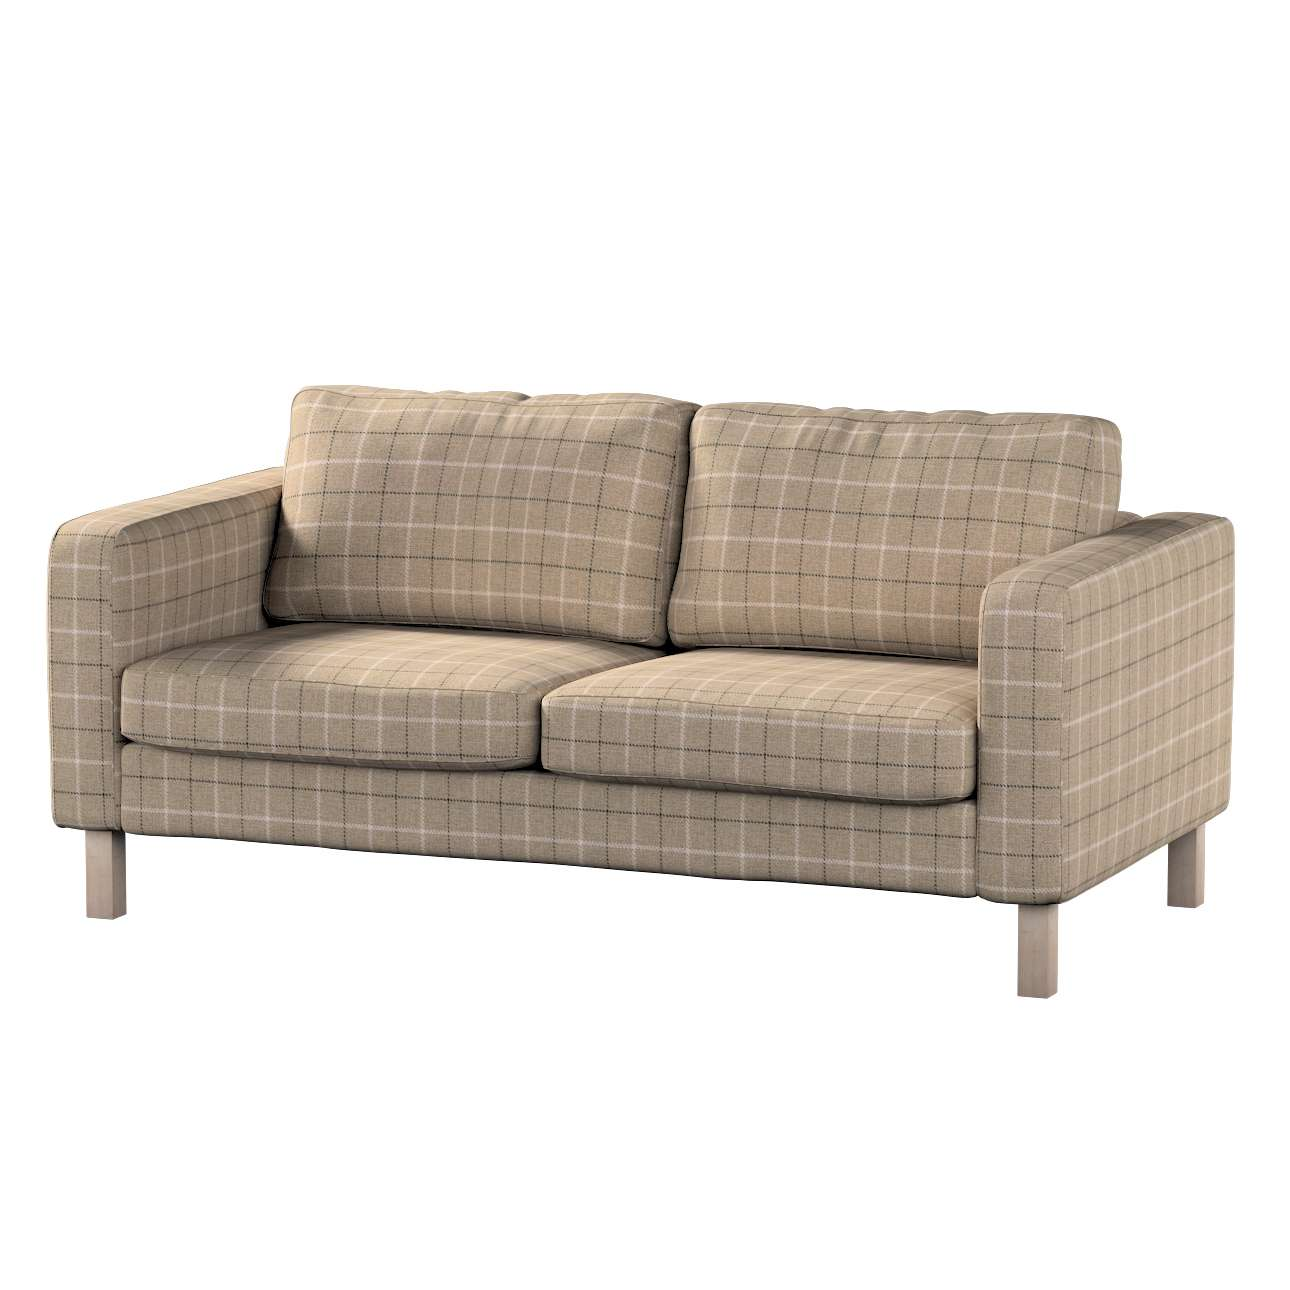 karlstad sofa cover uk raymond and flanigan furniture bed 2 seater stottflooring